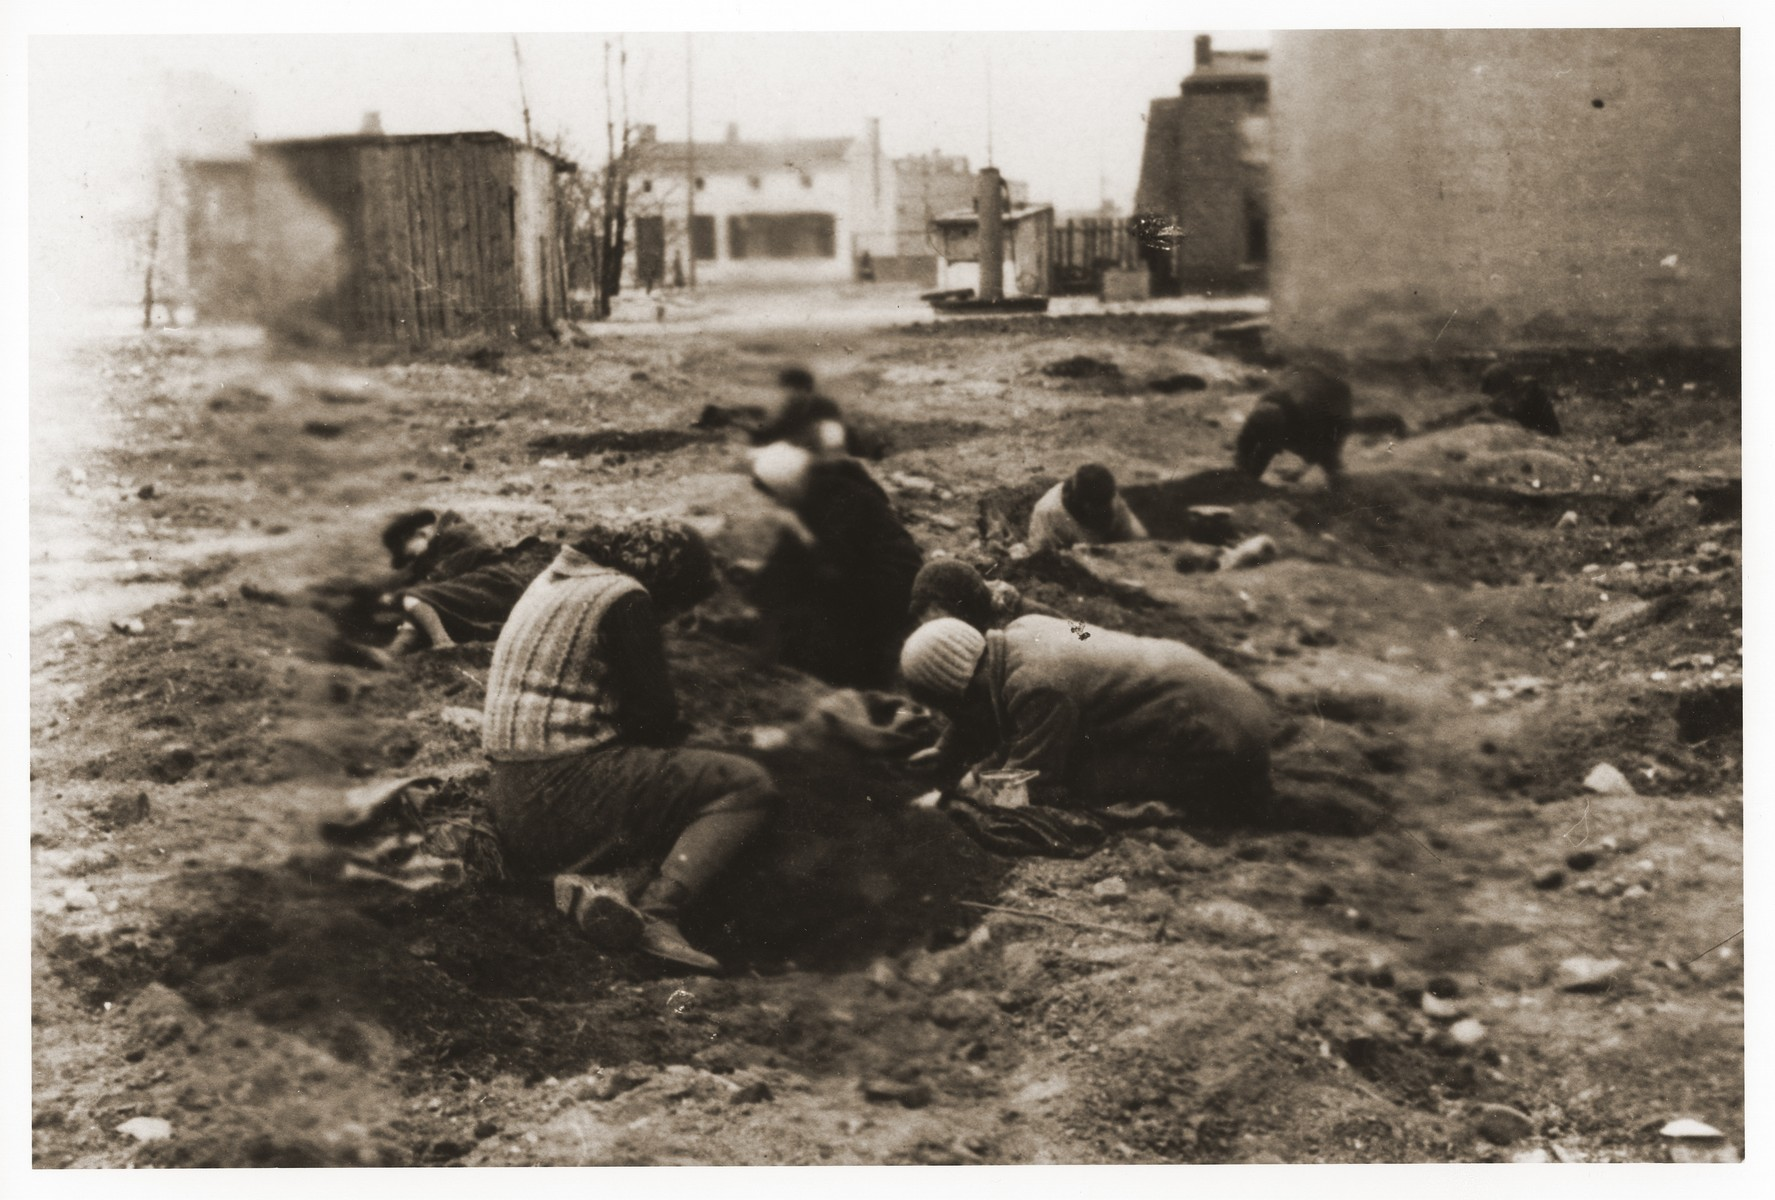 Children dig for fuel in an empty lot in the Lodz ghetto.